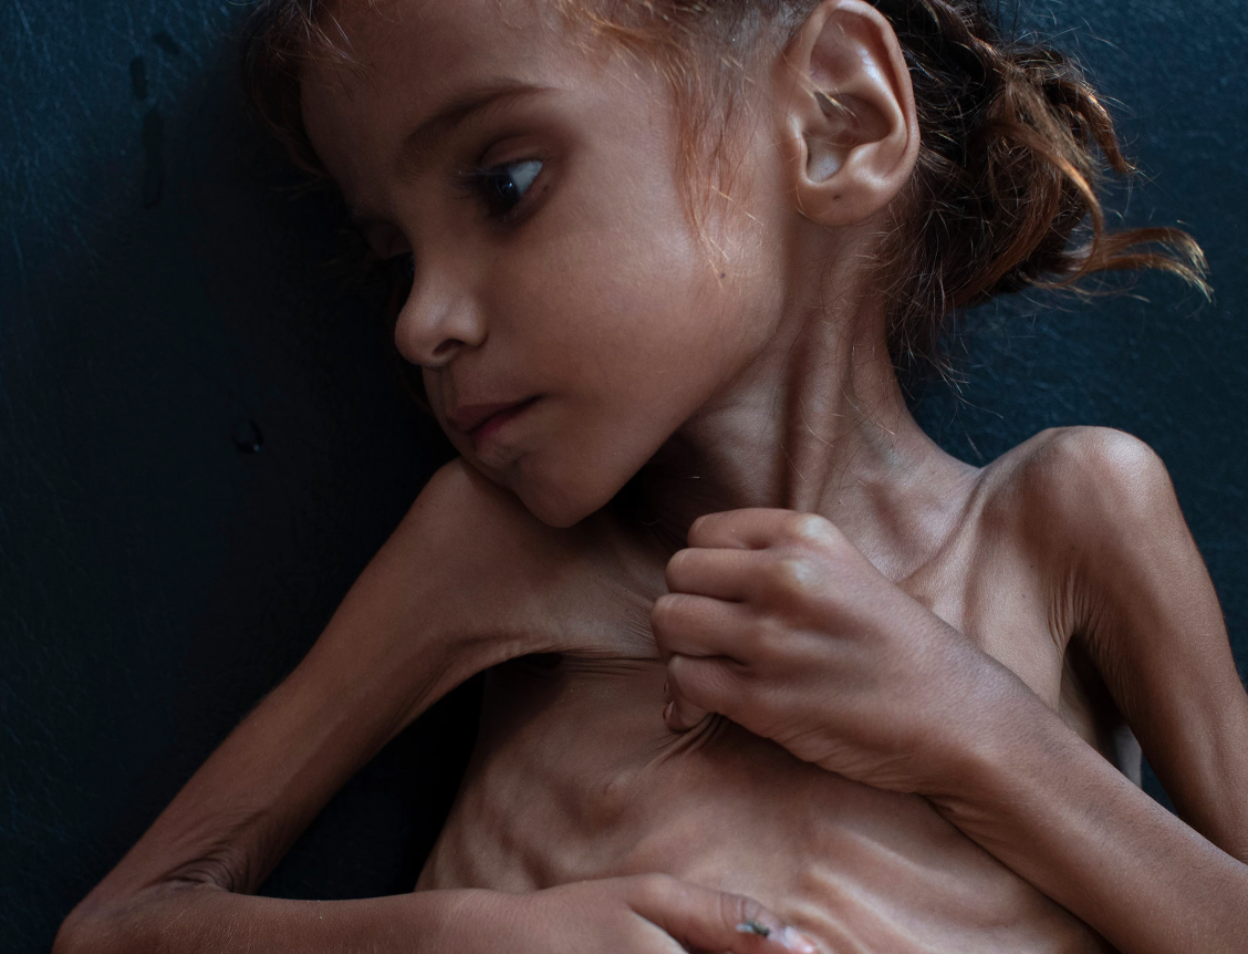 A seven year-old Yemeni girl named Amal Hussain suffers from acute malnutrition as a result of an impending widespread famine in Yemen. Photo: Tyler Hicks/ The New York Times